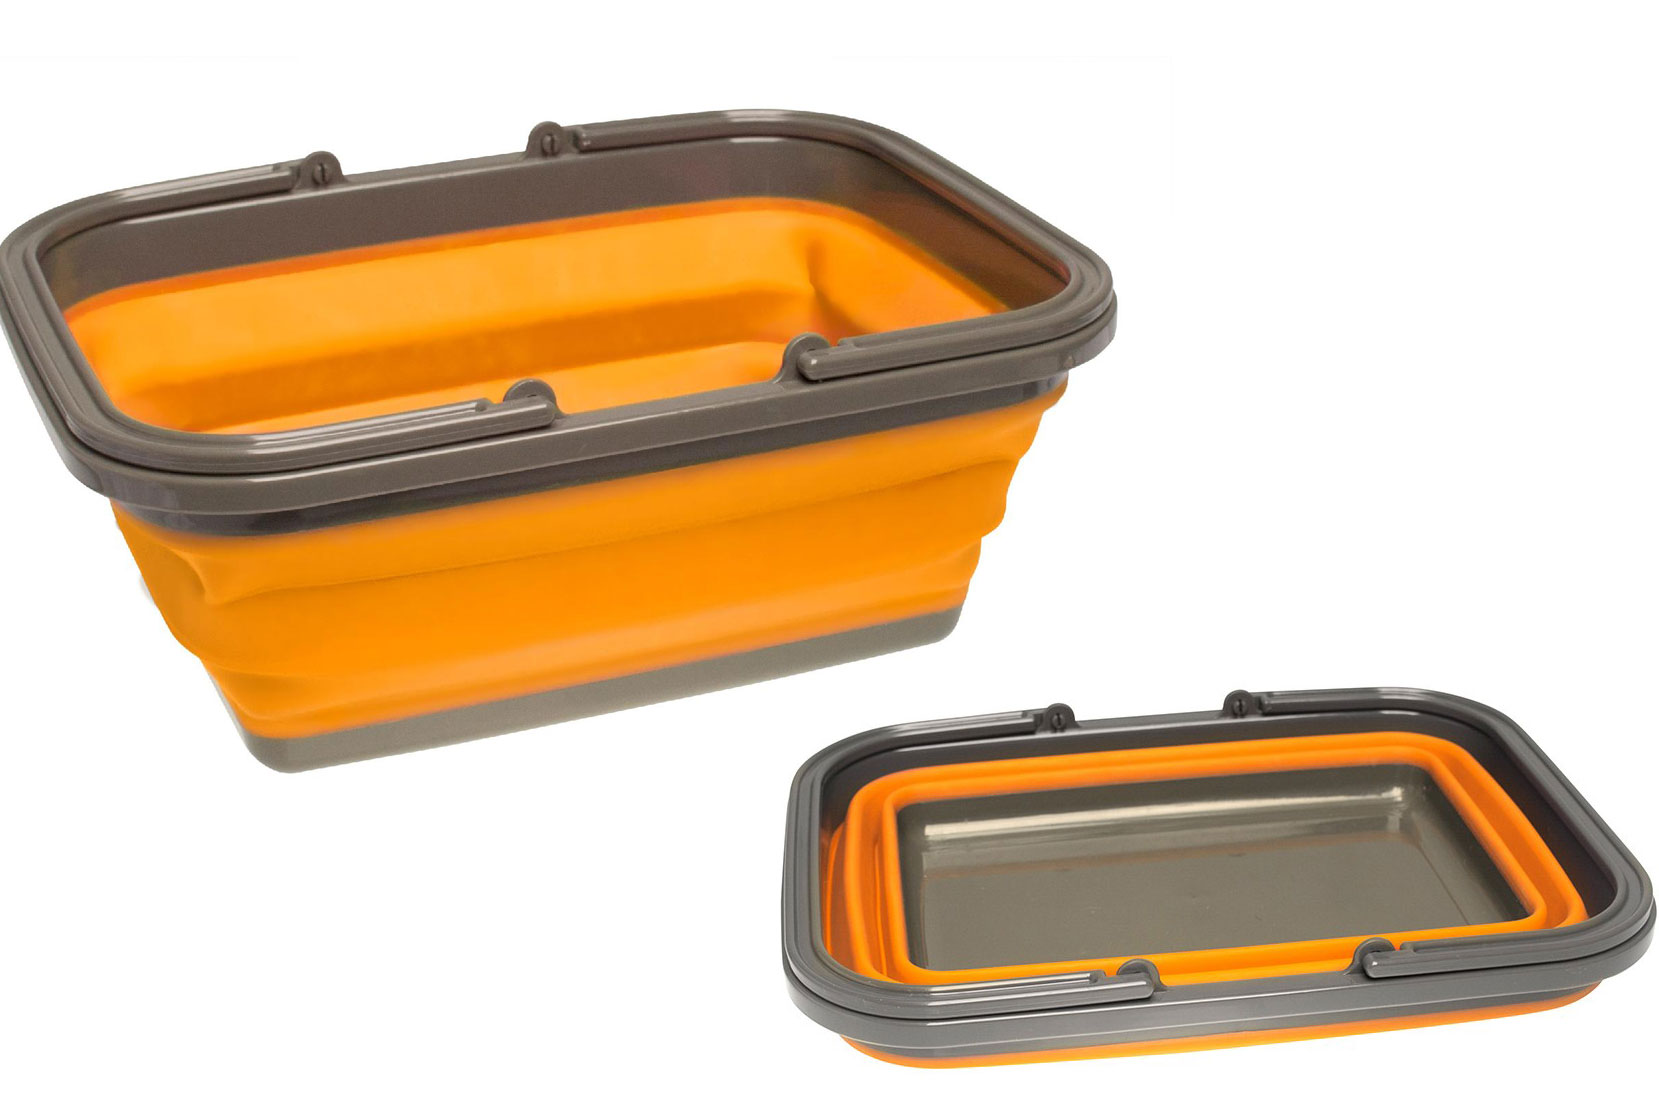 Ultimate Survival Technologies collapsible sink